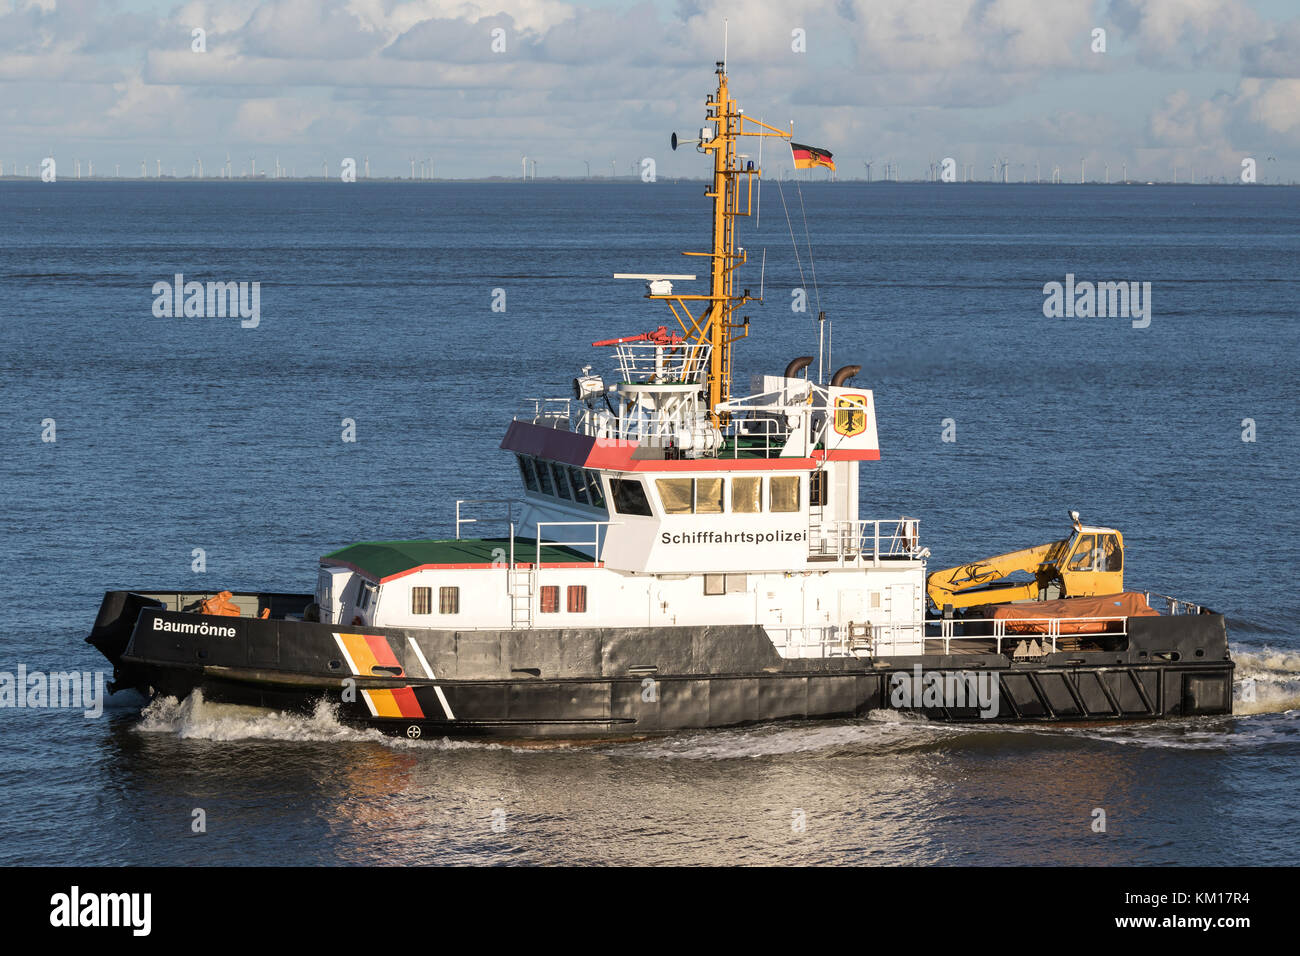 buoy tender BAUMRONNE on the river Elbe - Stock Image